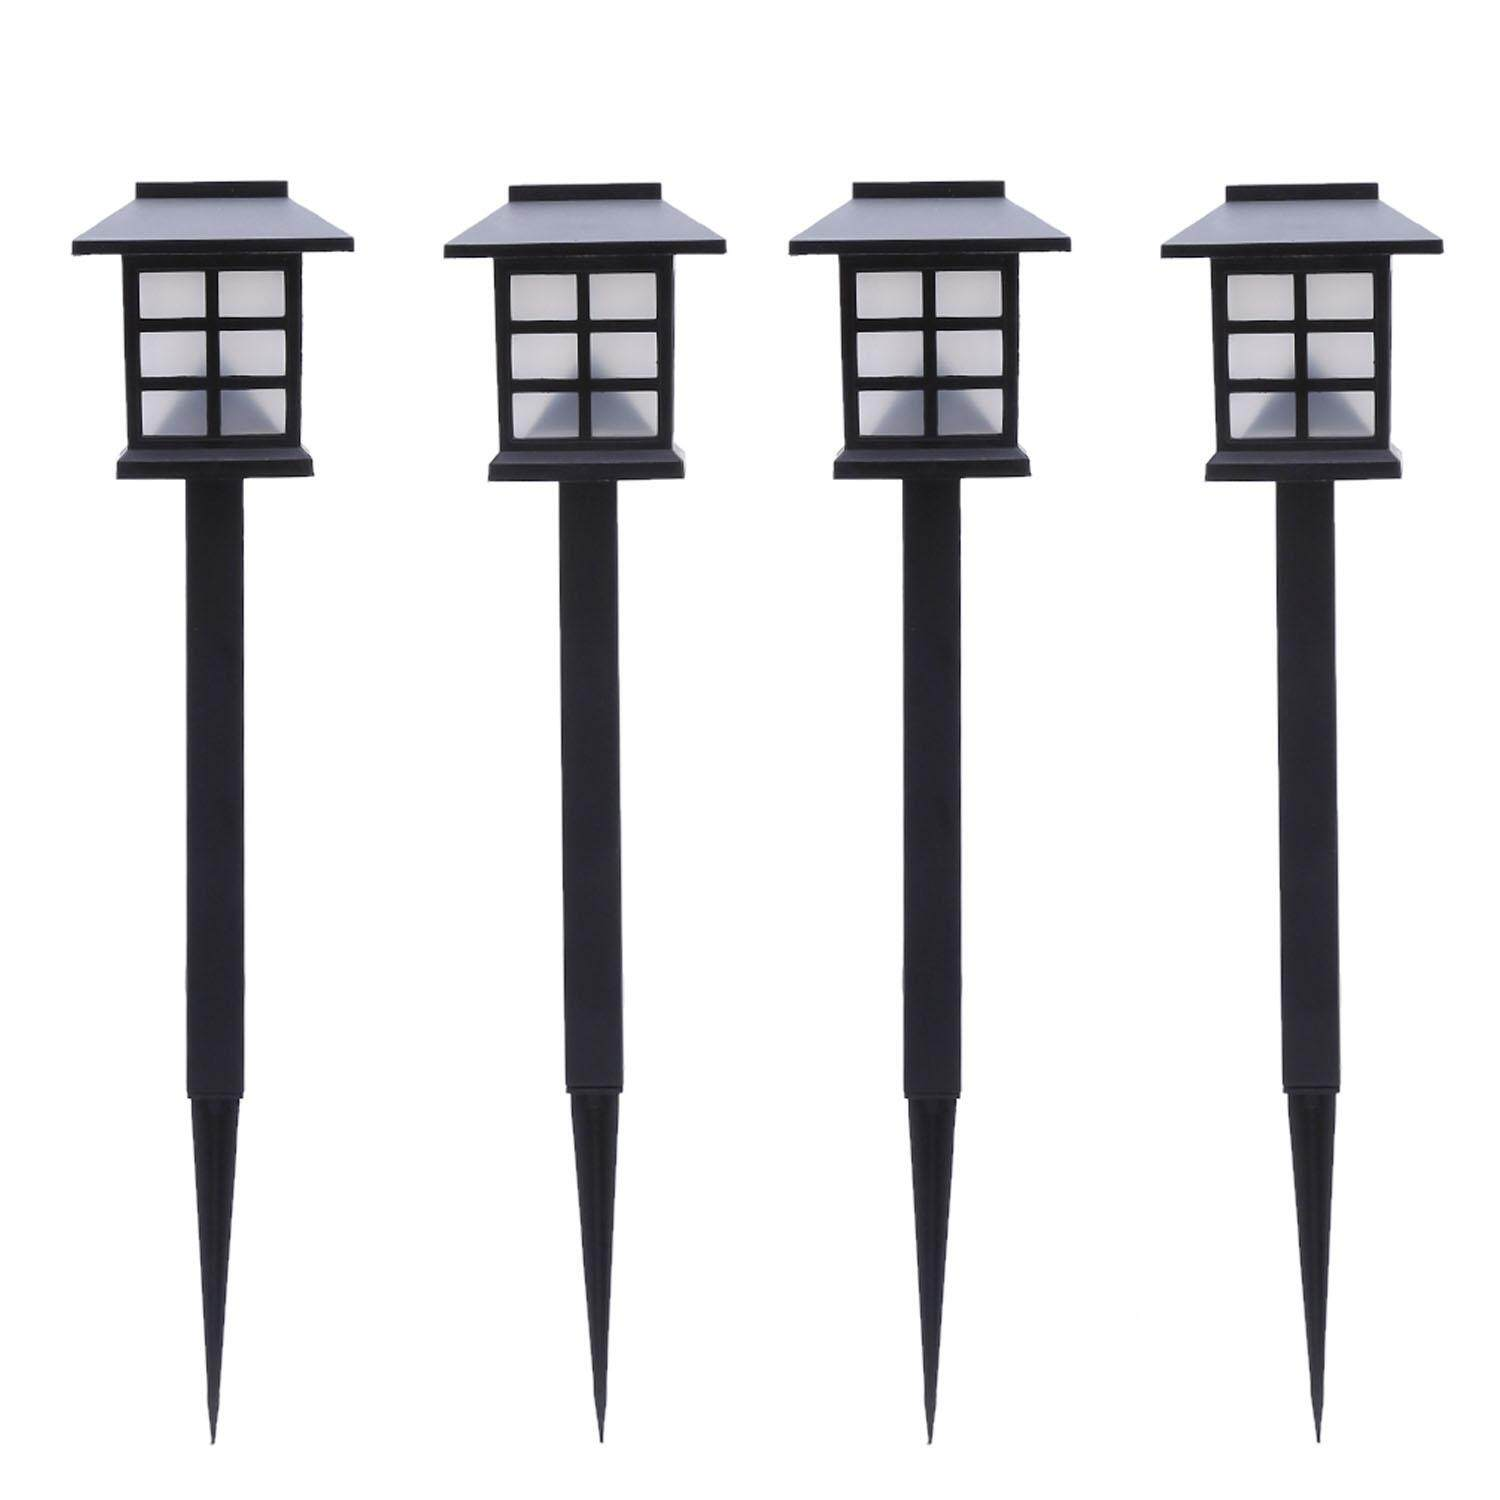 4 PCS Waterproof Outdoor Solar LED Pathway Landscape Light Lamp Stake for Garden Yard Lawn Pathway Patio Driveway White Light